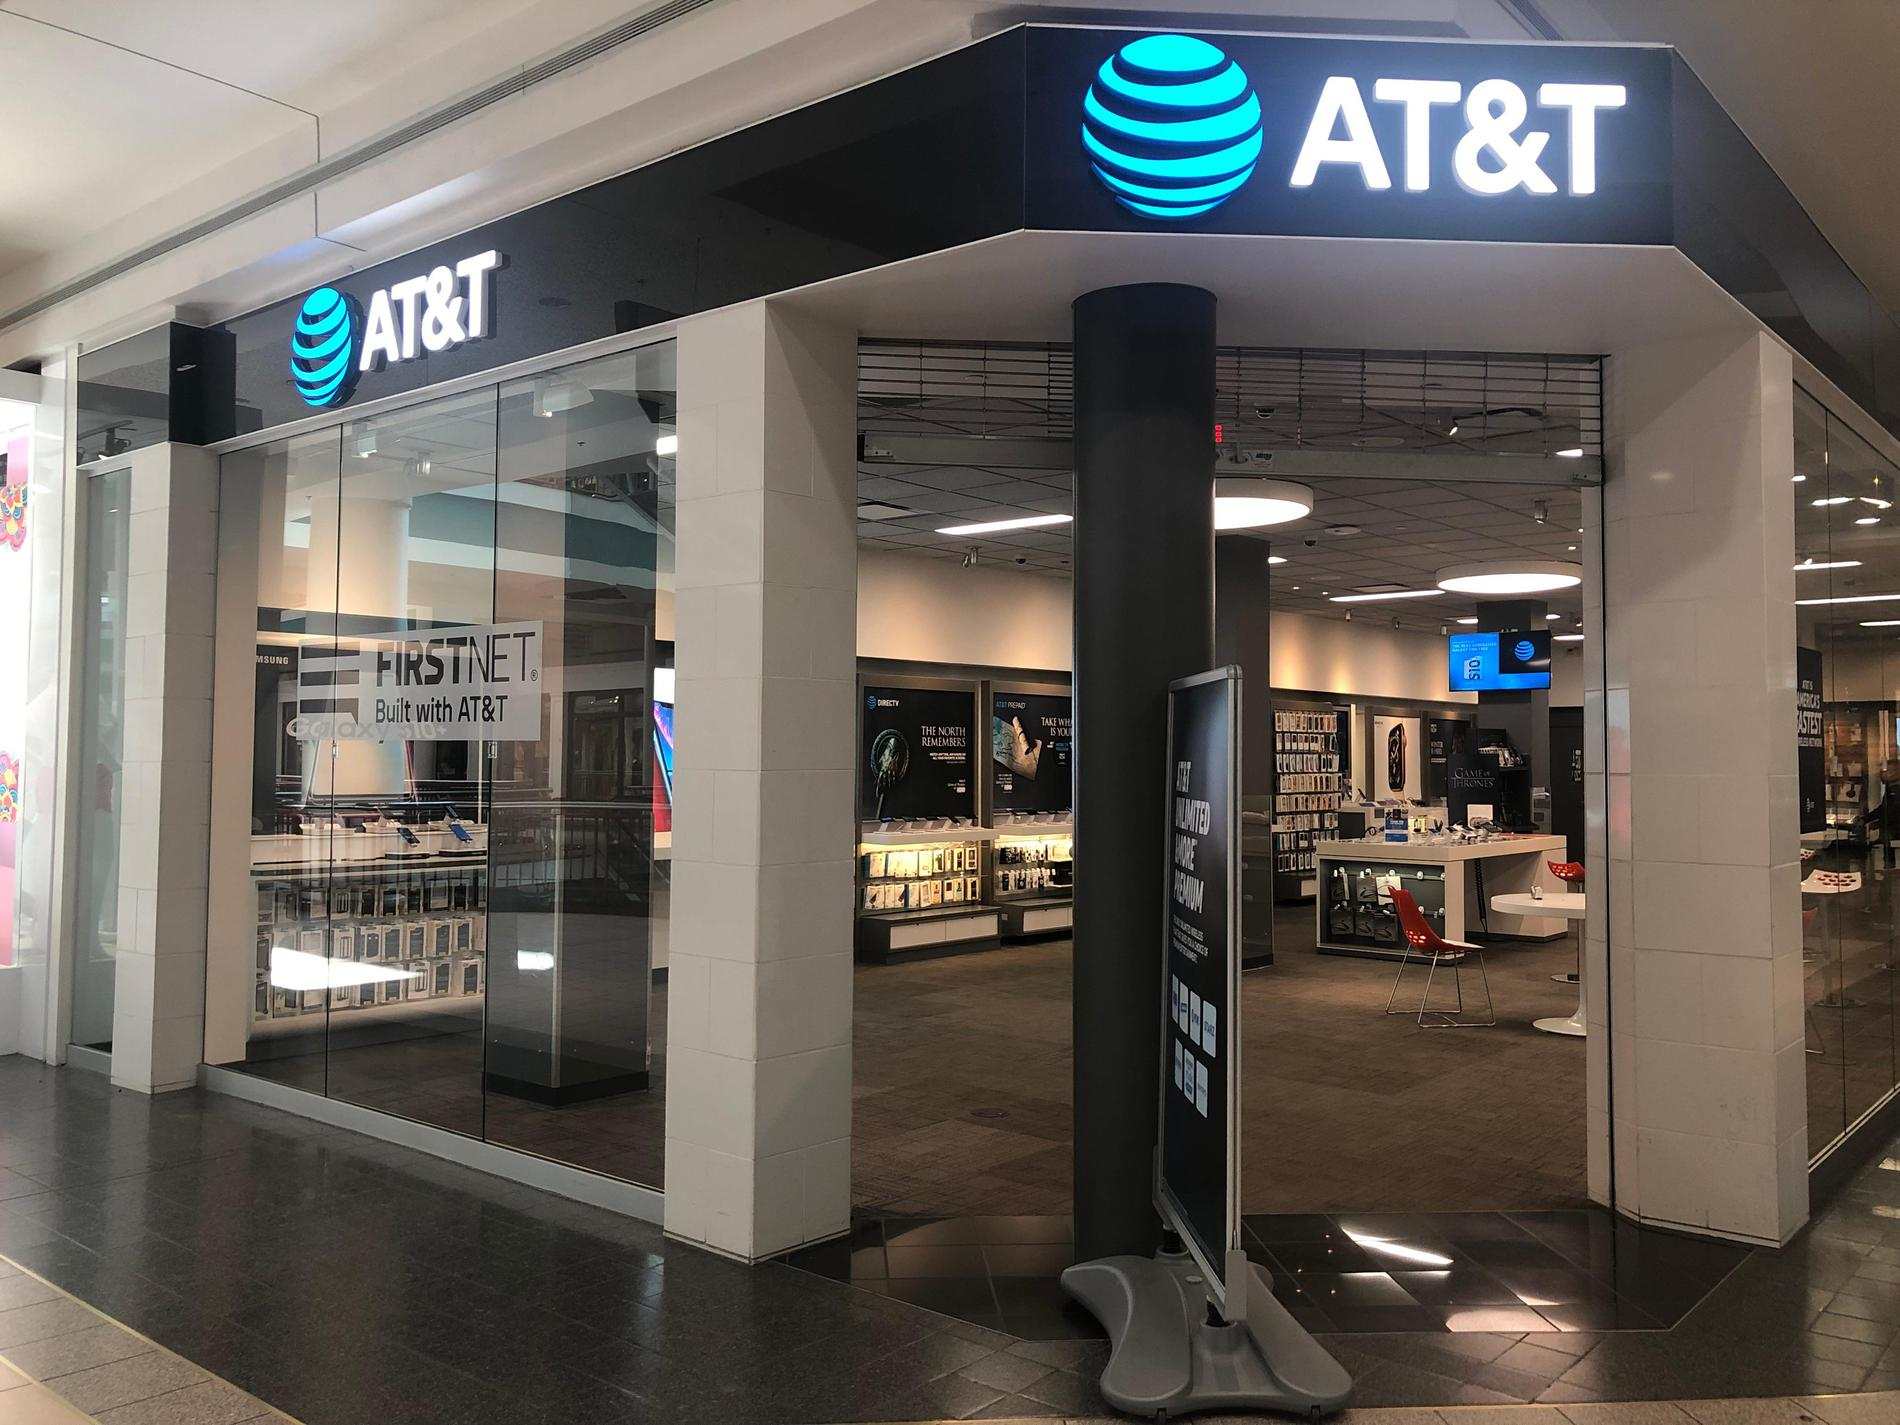 AT&T Store - Destiny Usa Mall - Syracuse, NY on